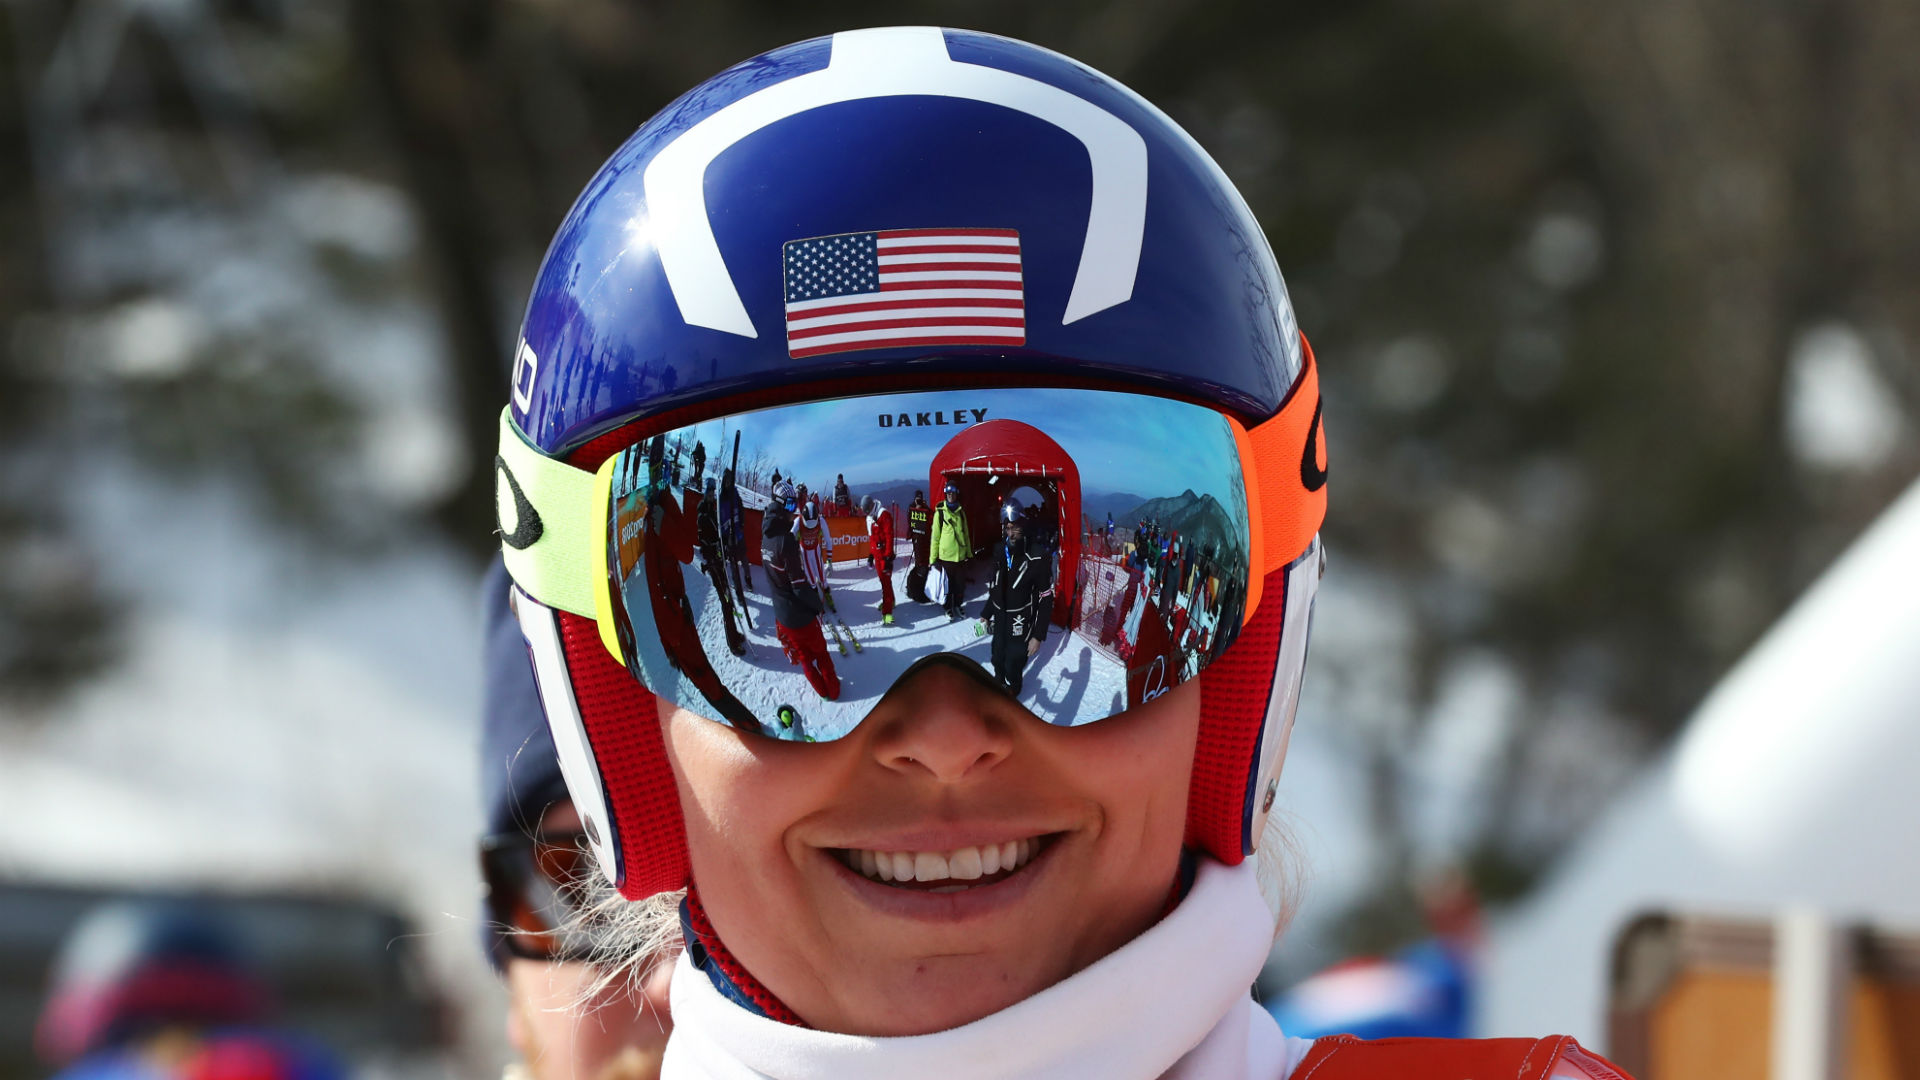 American Lindsey Vonn takes bronze in likely final Olympic downhill race